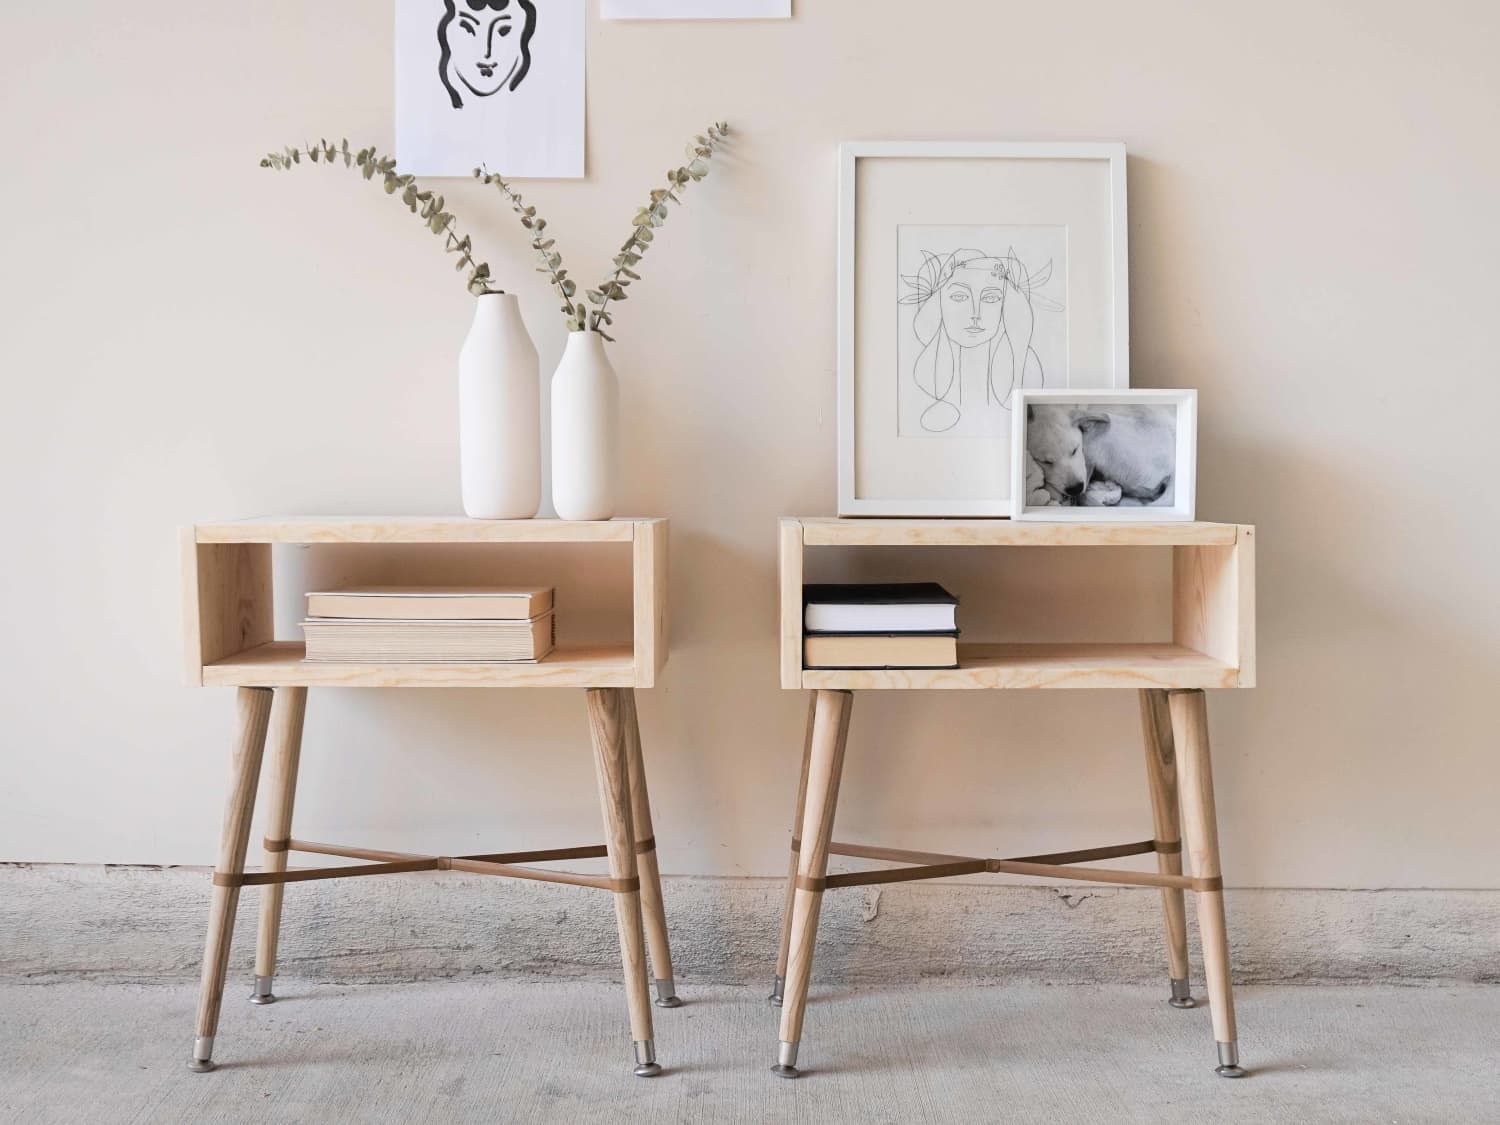 How To Build Simple Wood Nightstands Apartment Therapy